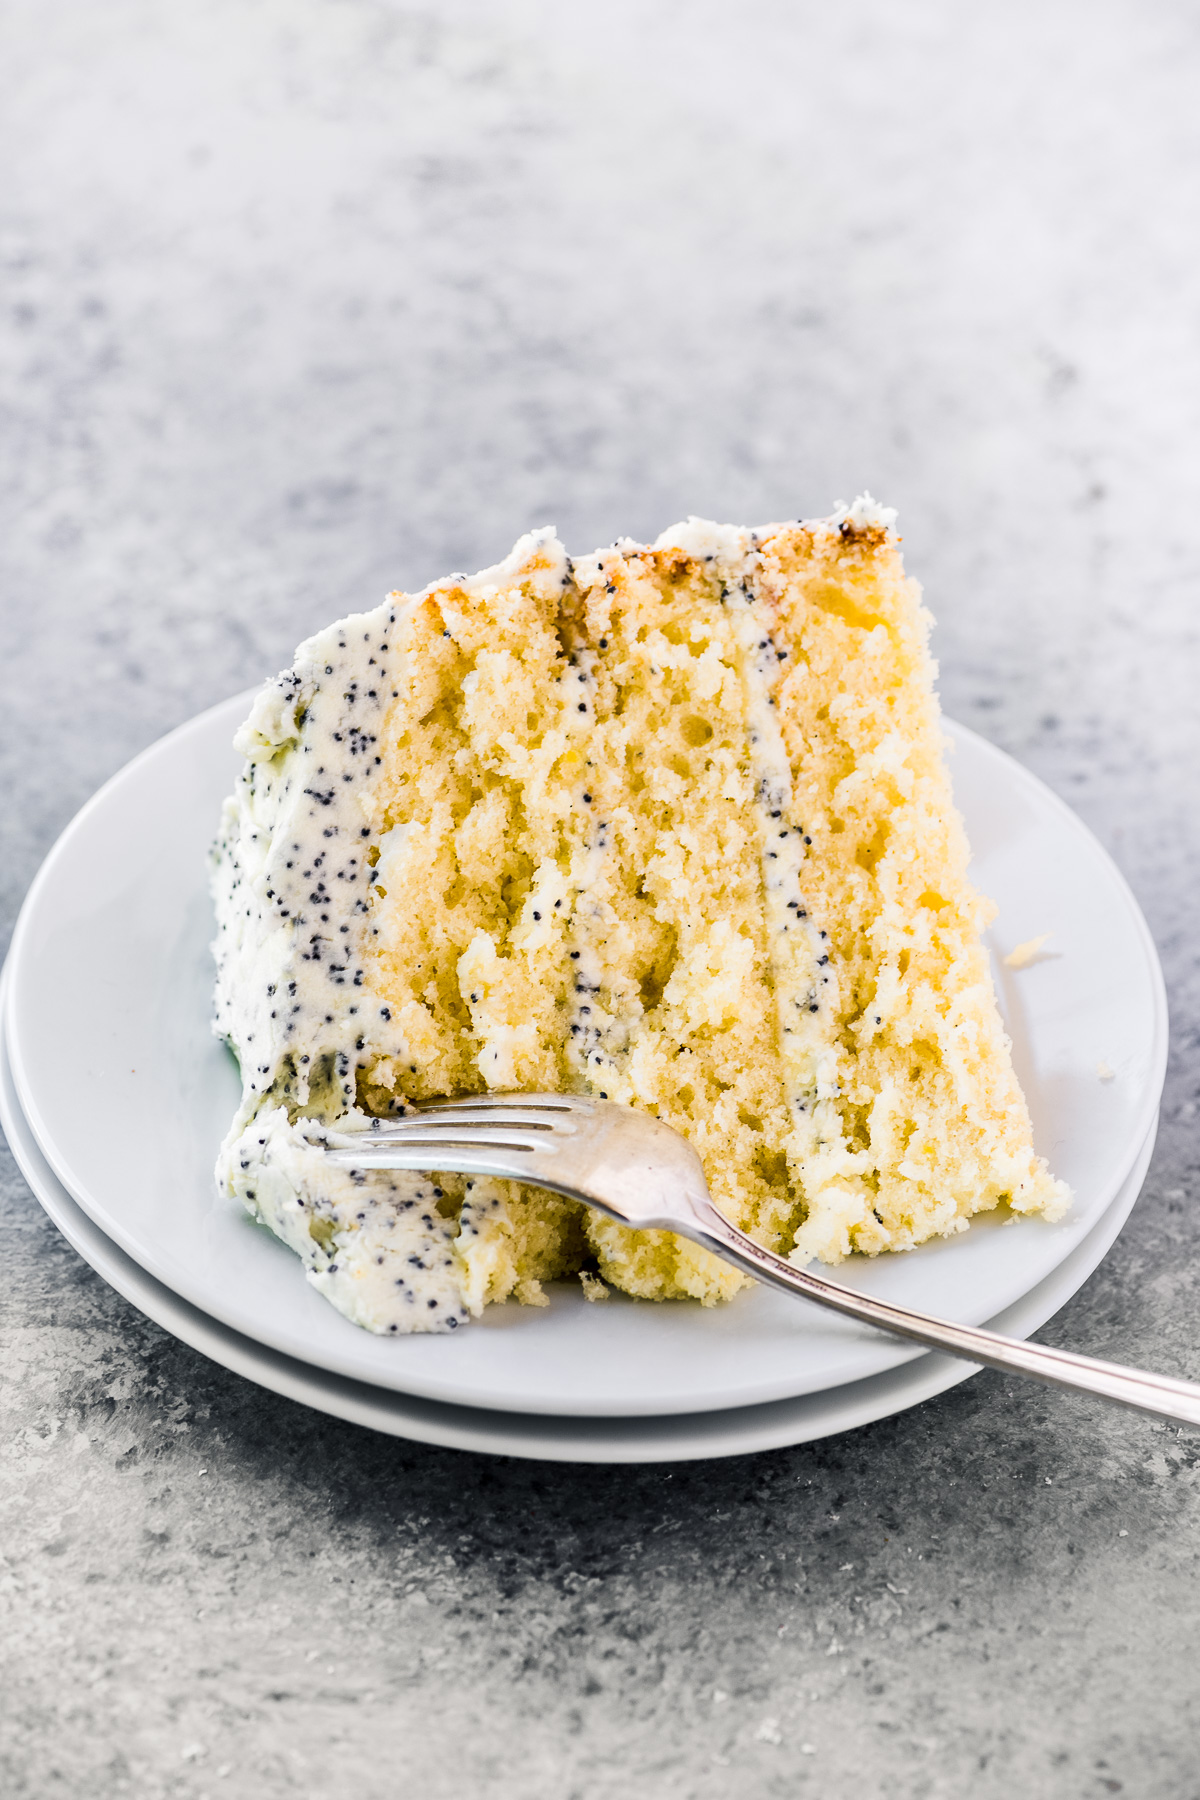 a slice of lemon layer cake on a plate with fork